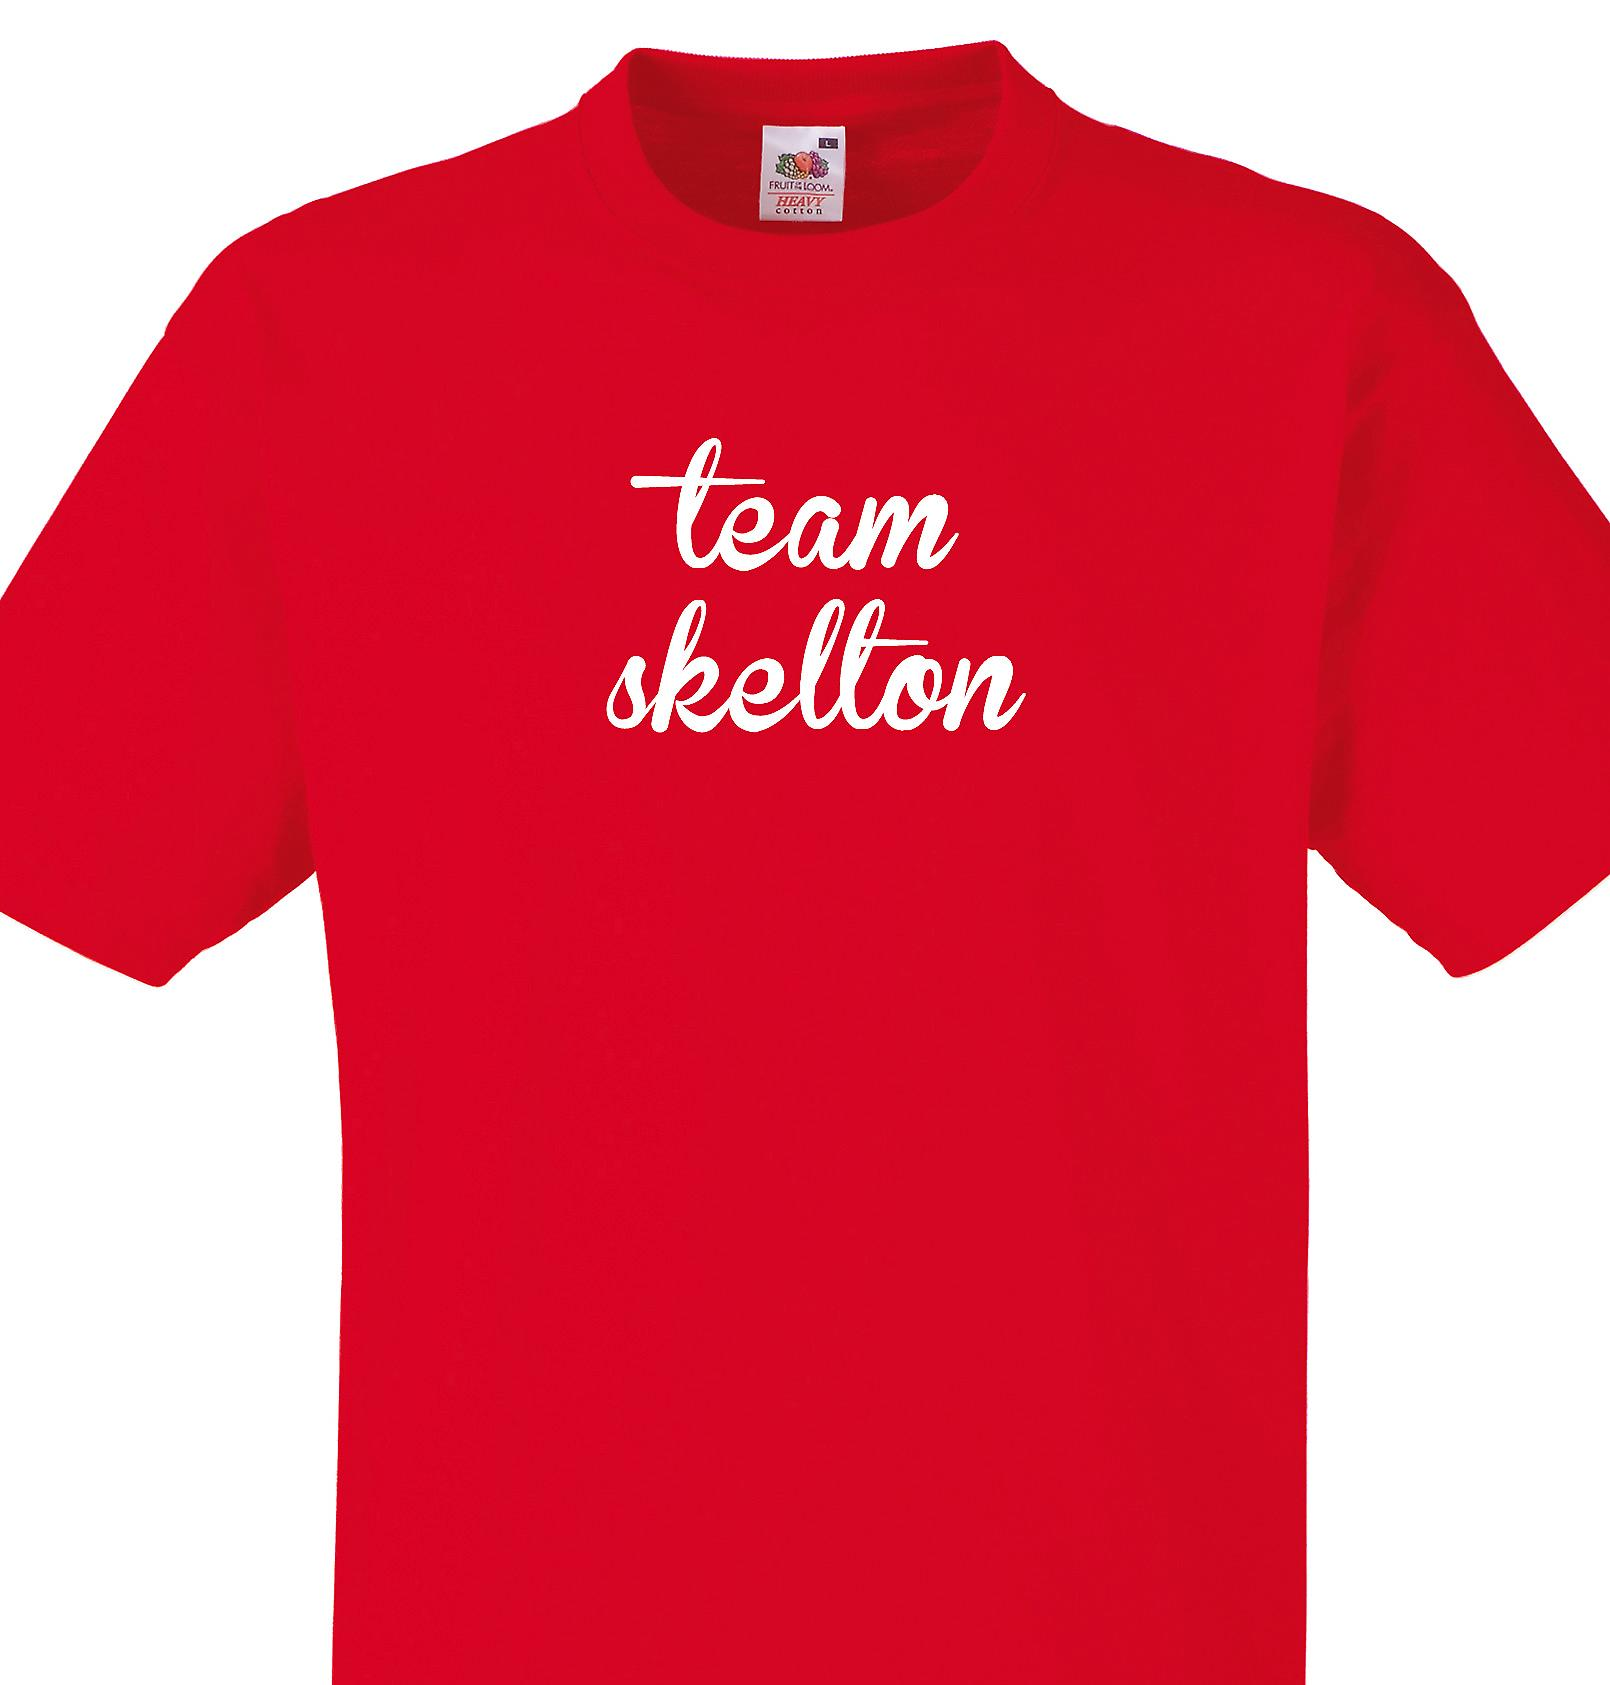 Team Skelton Red T shirt